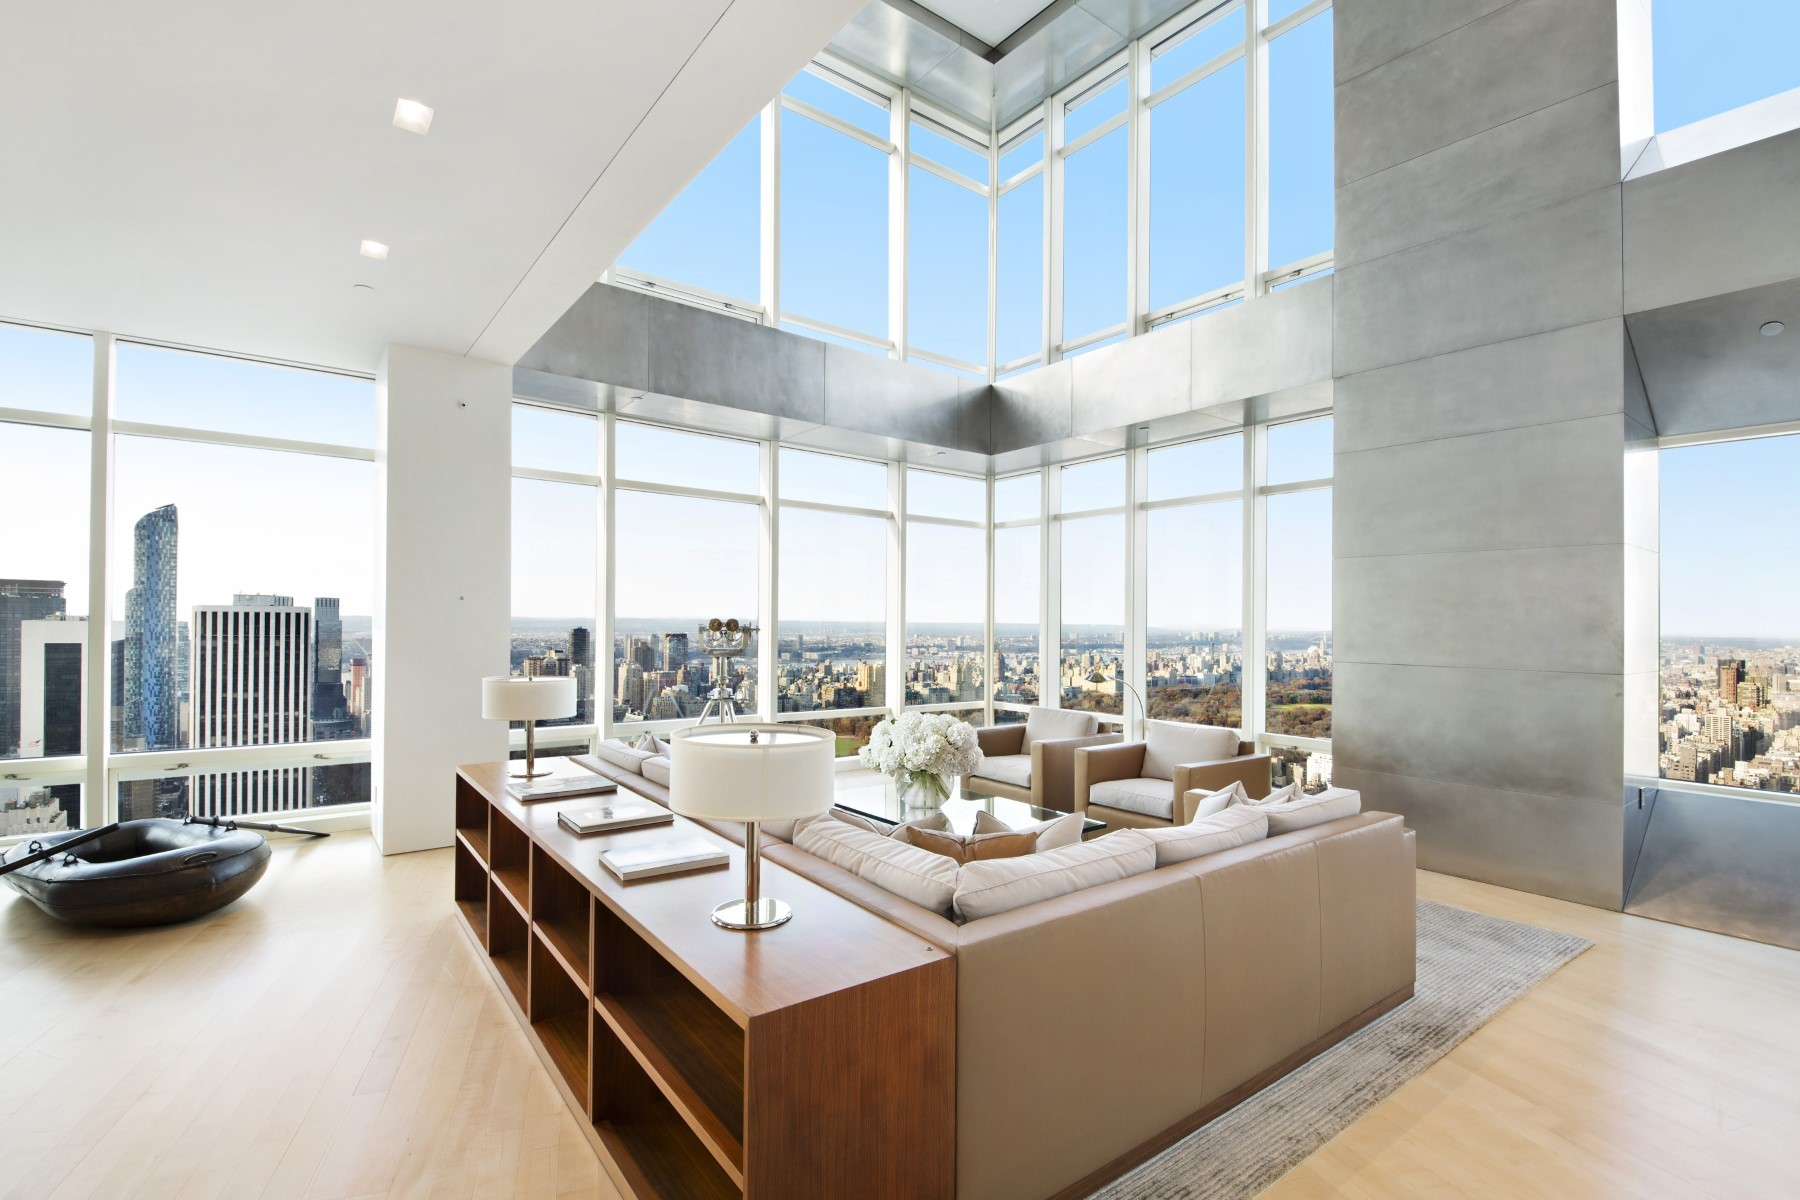 Phenomenal 82 million penthouse apartment in new york for Penthouse apartments in nyc